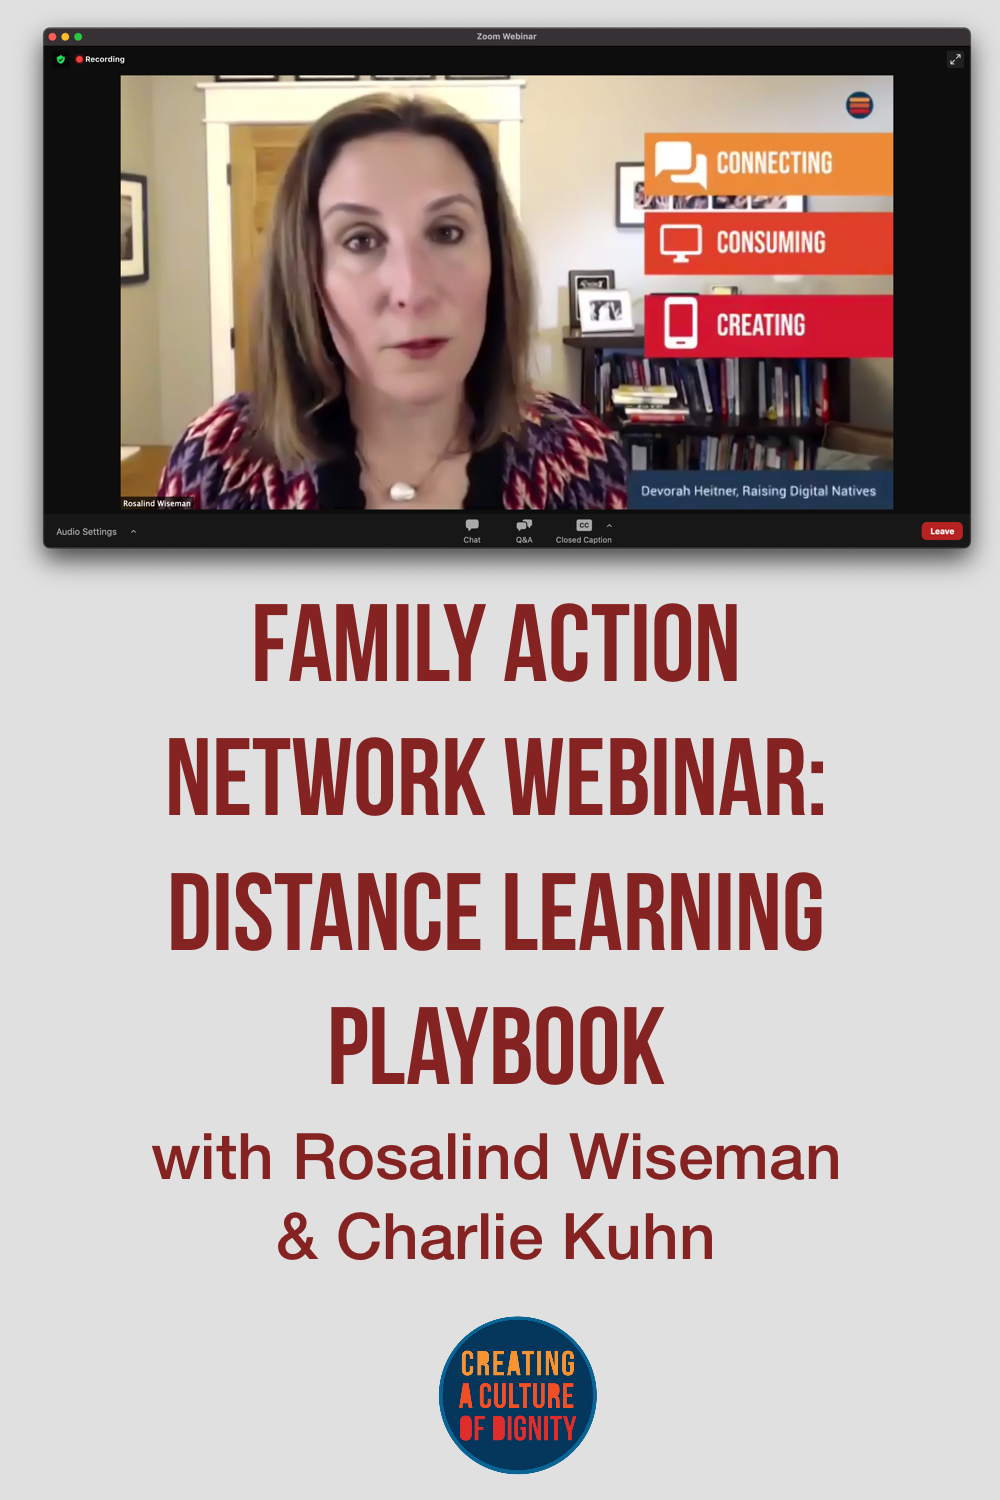 Family Action Network Webinar: Distance Learning Playbook with Rosalind Wiseman & Charlie Kuhn